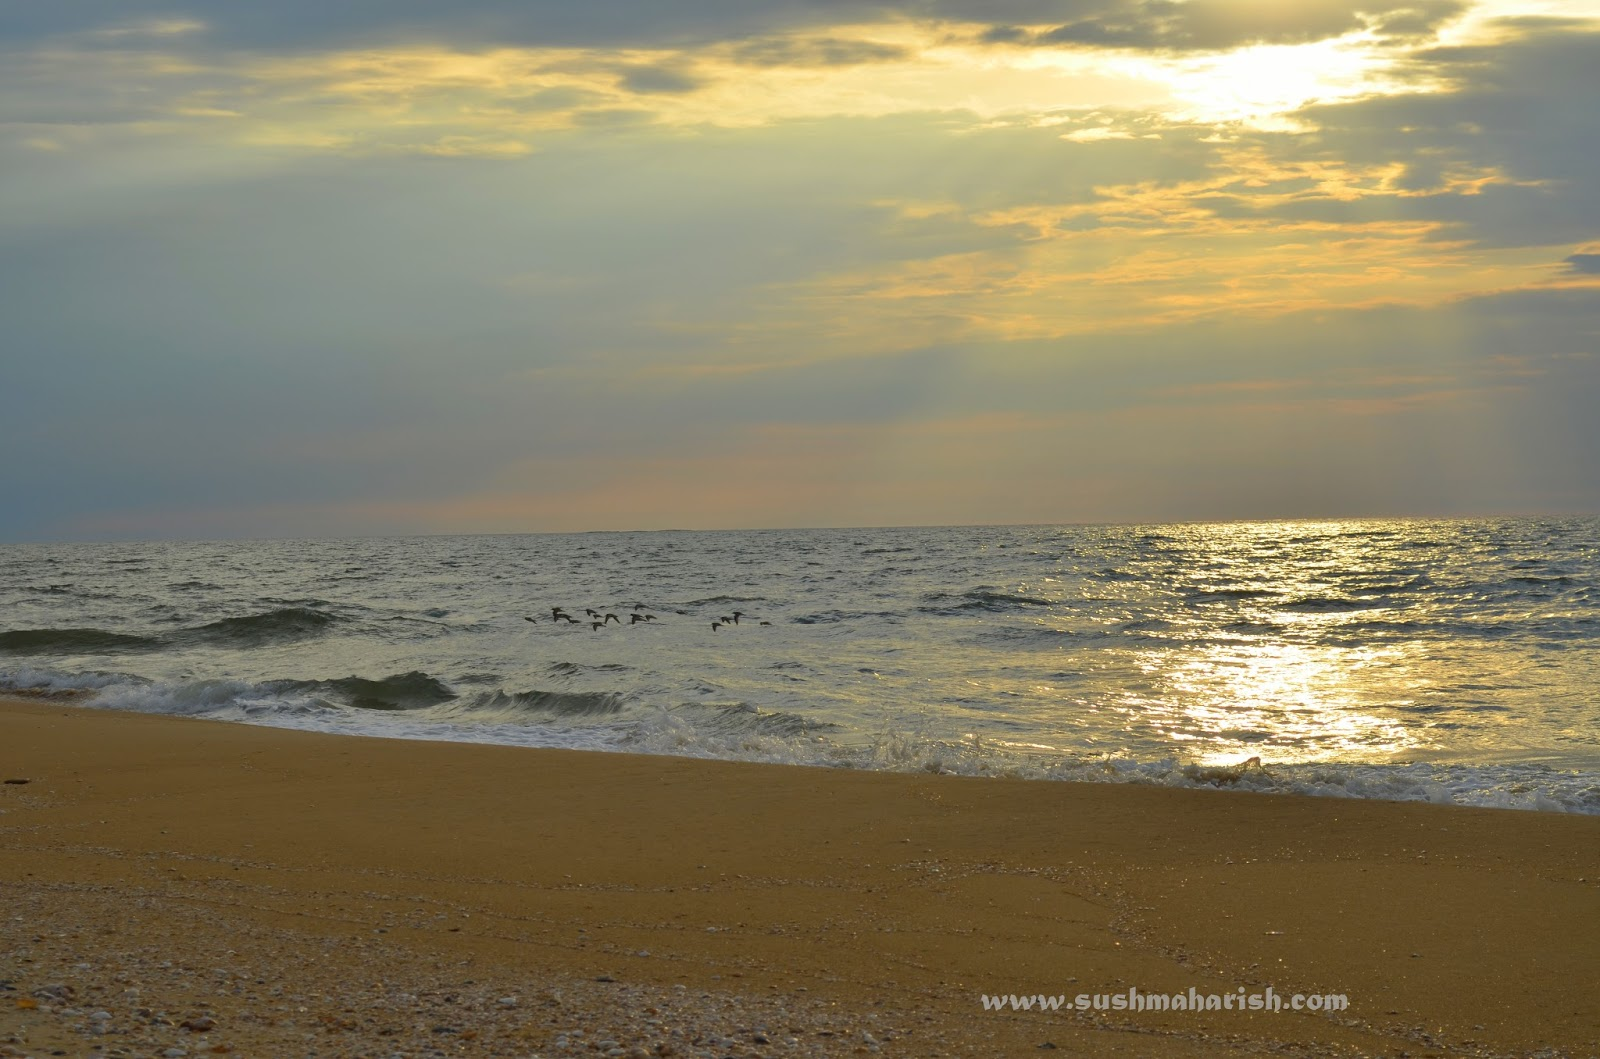 Two Best Beaches Of Udupi - Bengre The Silent Estuary And The Swarming Malpe 8